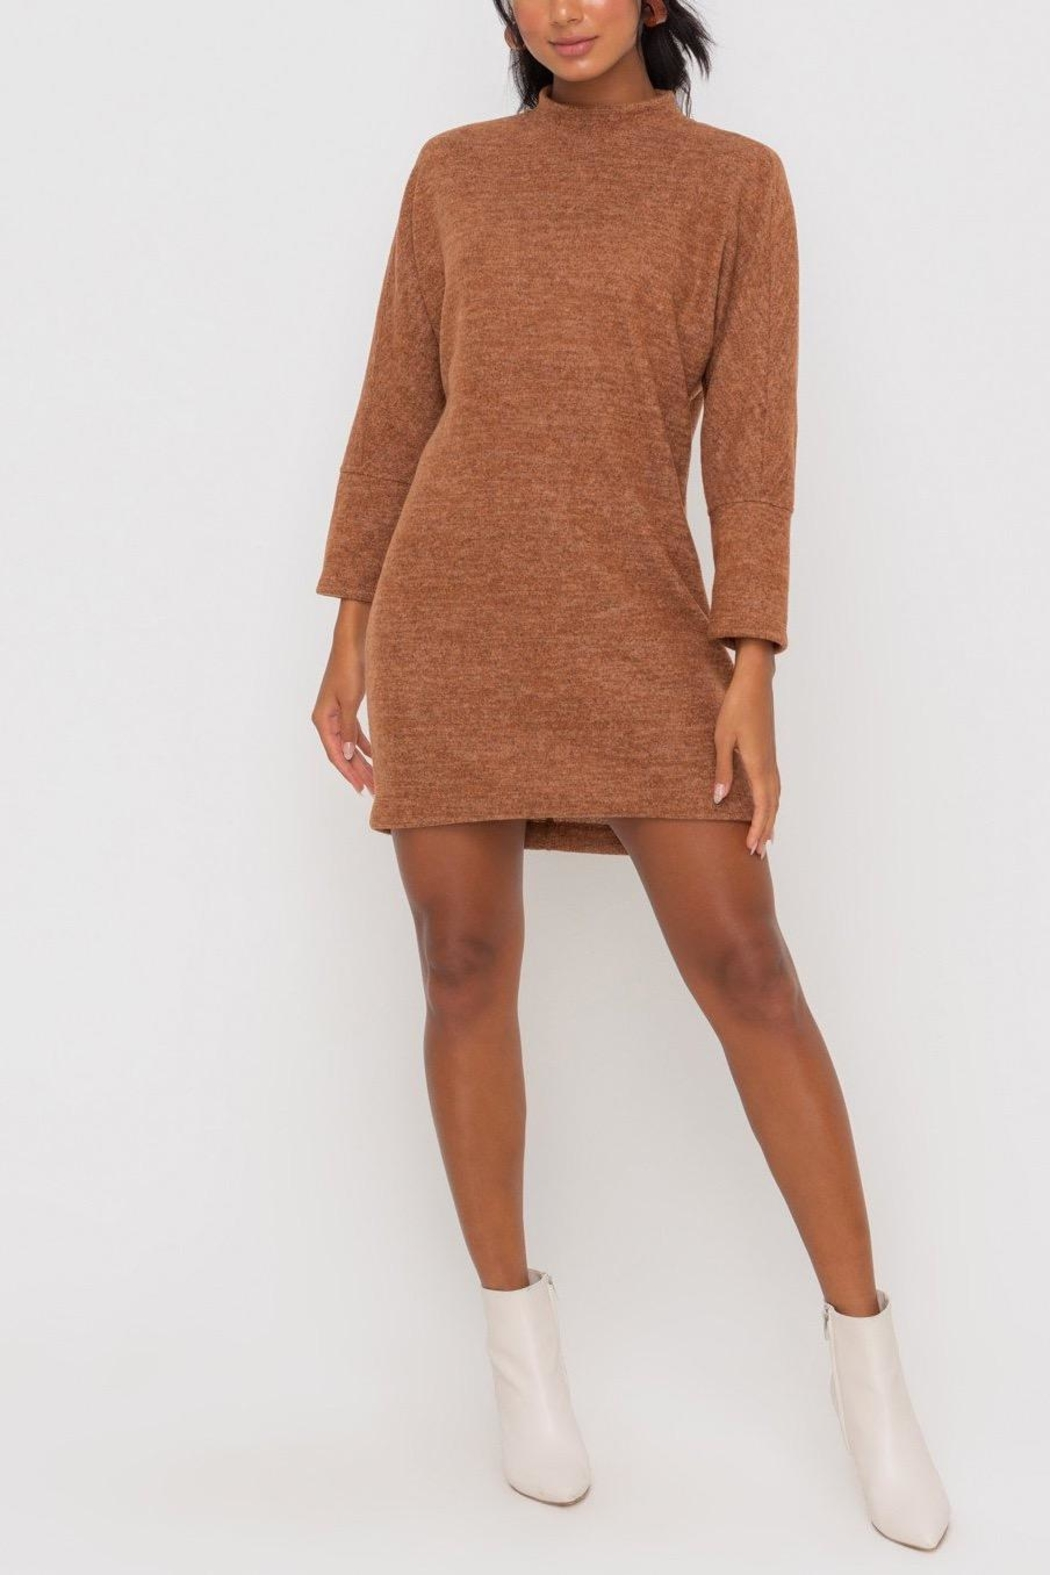 Lush Clothing  Mock-Neck Knit-Dress - Hazel - Main Image